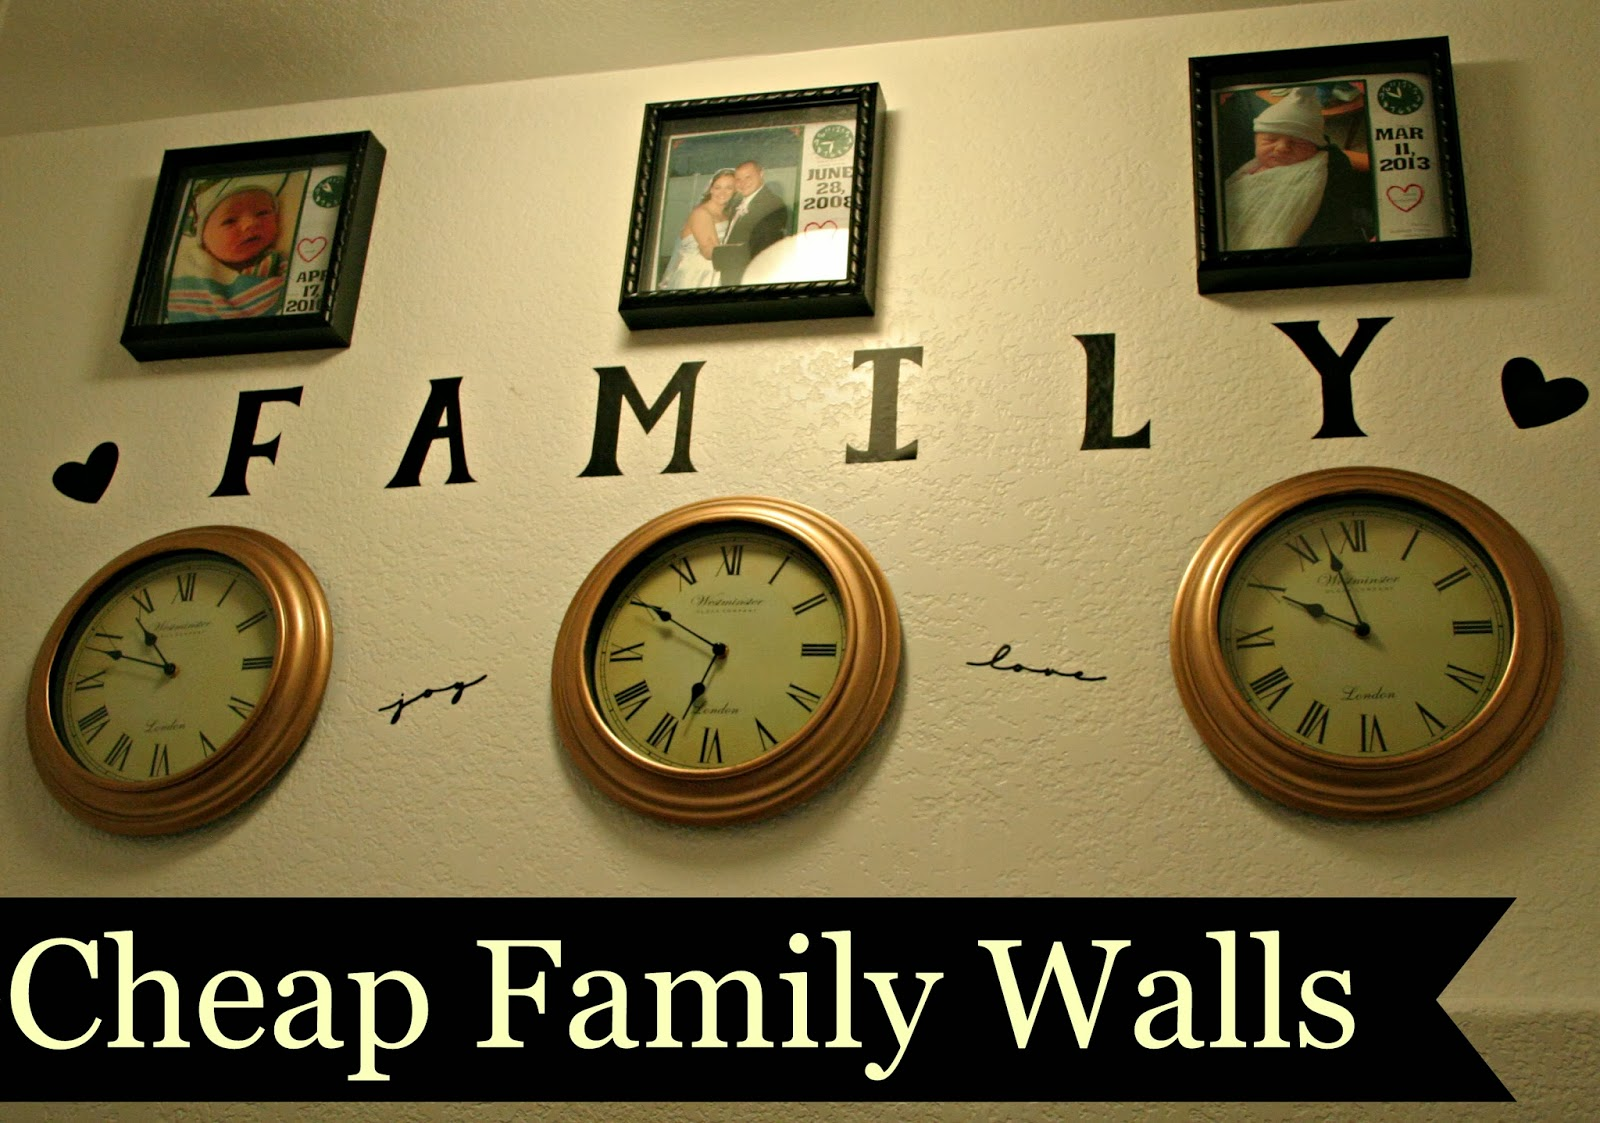 Cheap Family Wall Displays